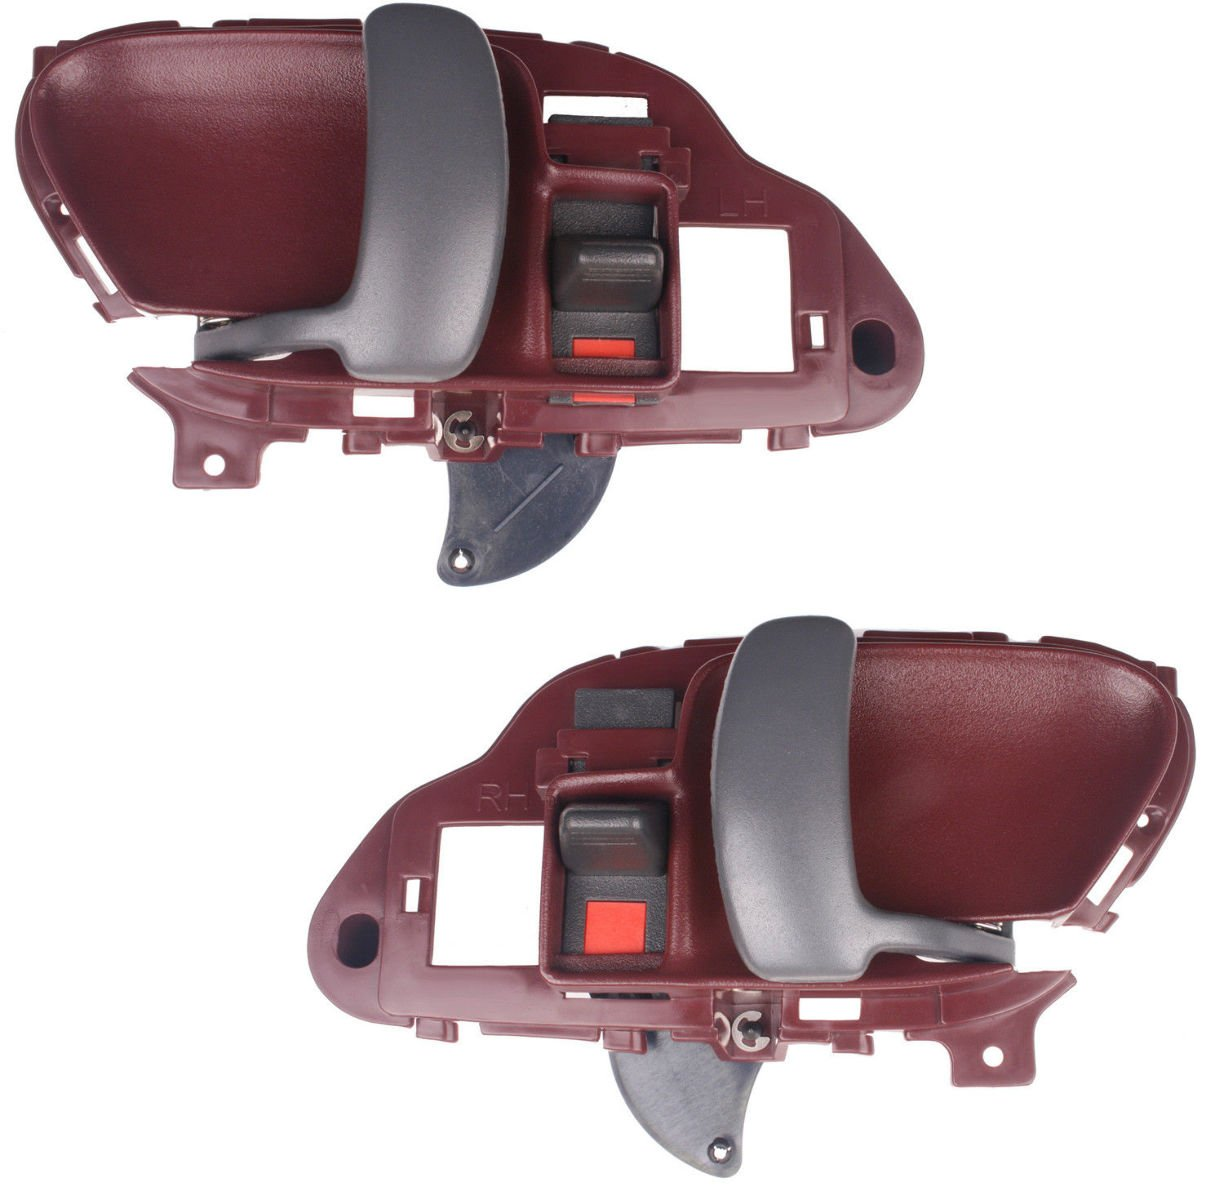 NEW Front Inside Door Handle RED Pair Set Fits 95-98 Chevrolet Silverado GMC Sierra Truck, 95-99 Suburban Tahoe Yukon Driver and Passenger Aftermarket